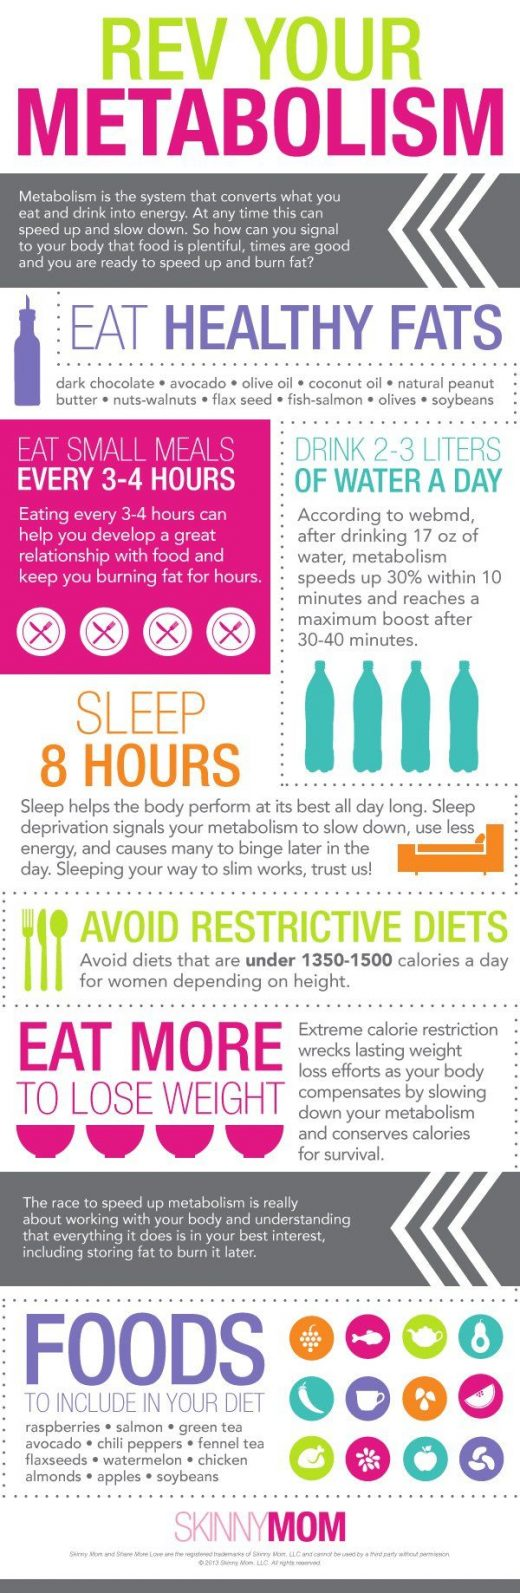 Infographic: Rev Your Metabolism for Weight Loss